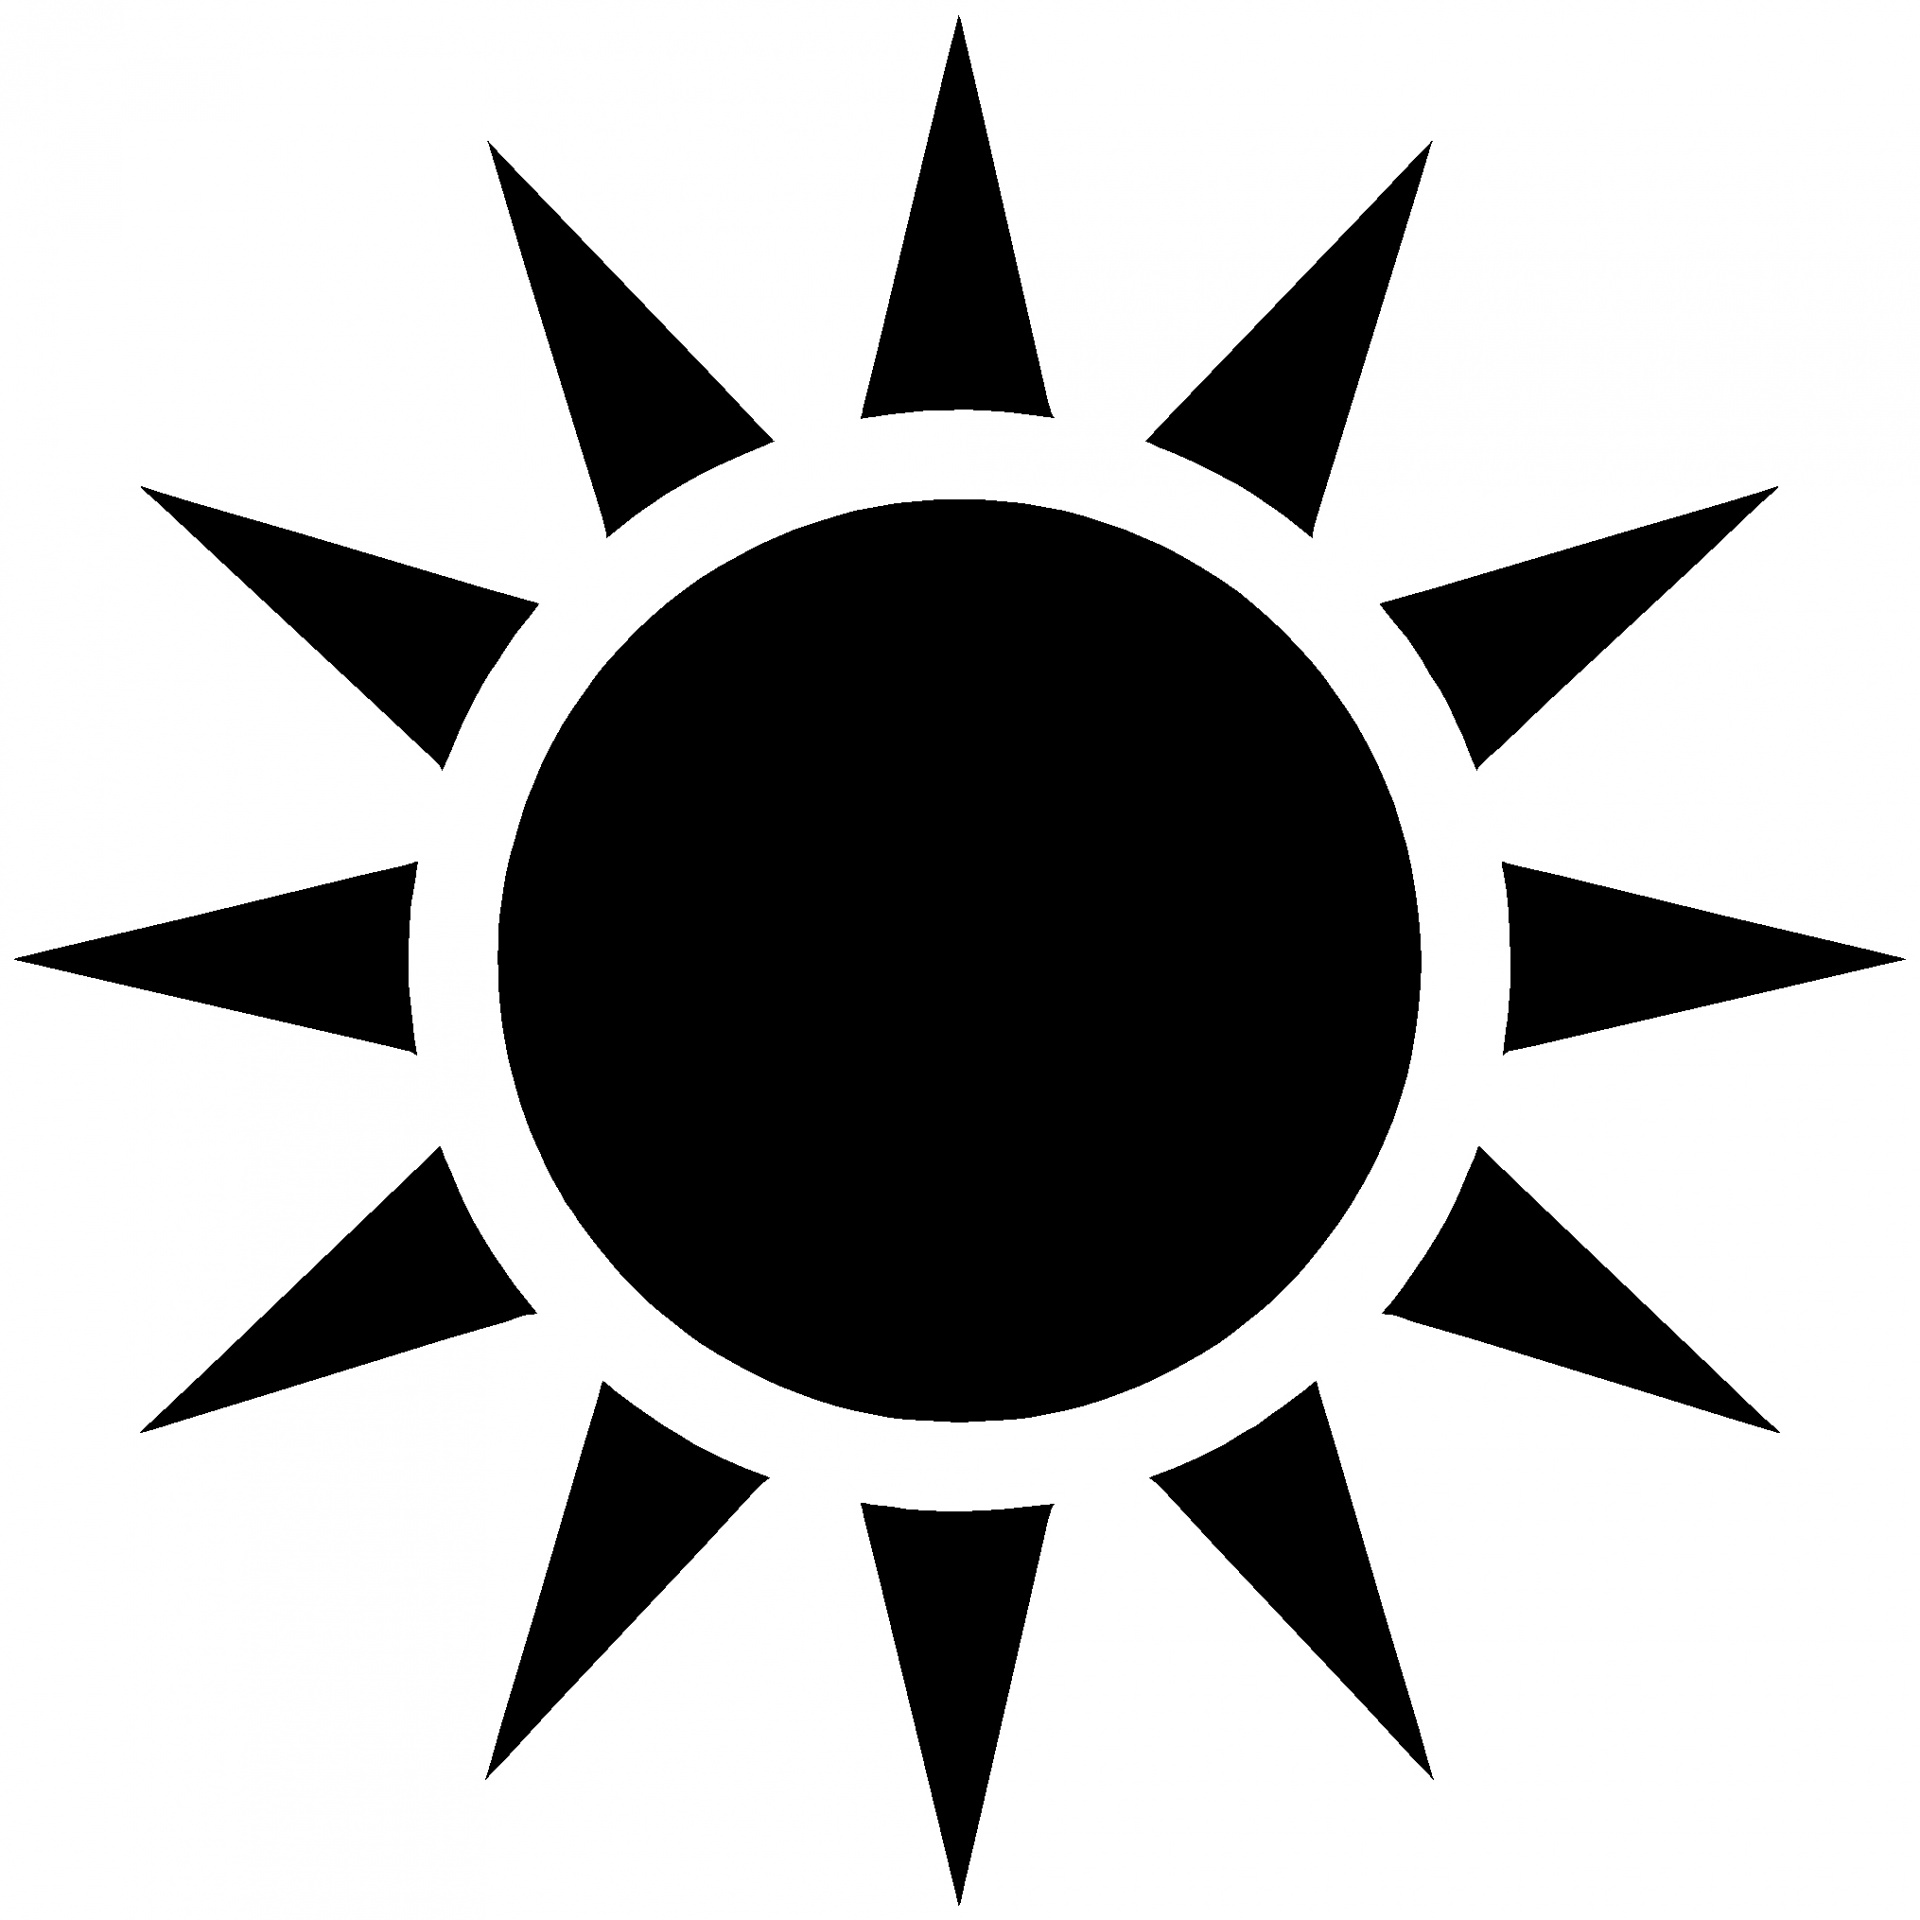 sun silhouette vector at getdrawings com free for personal use sun